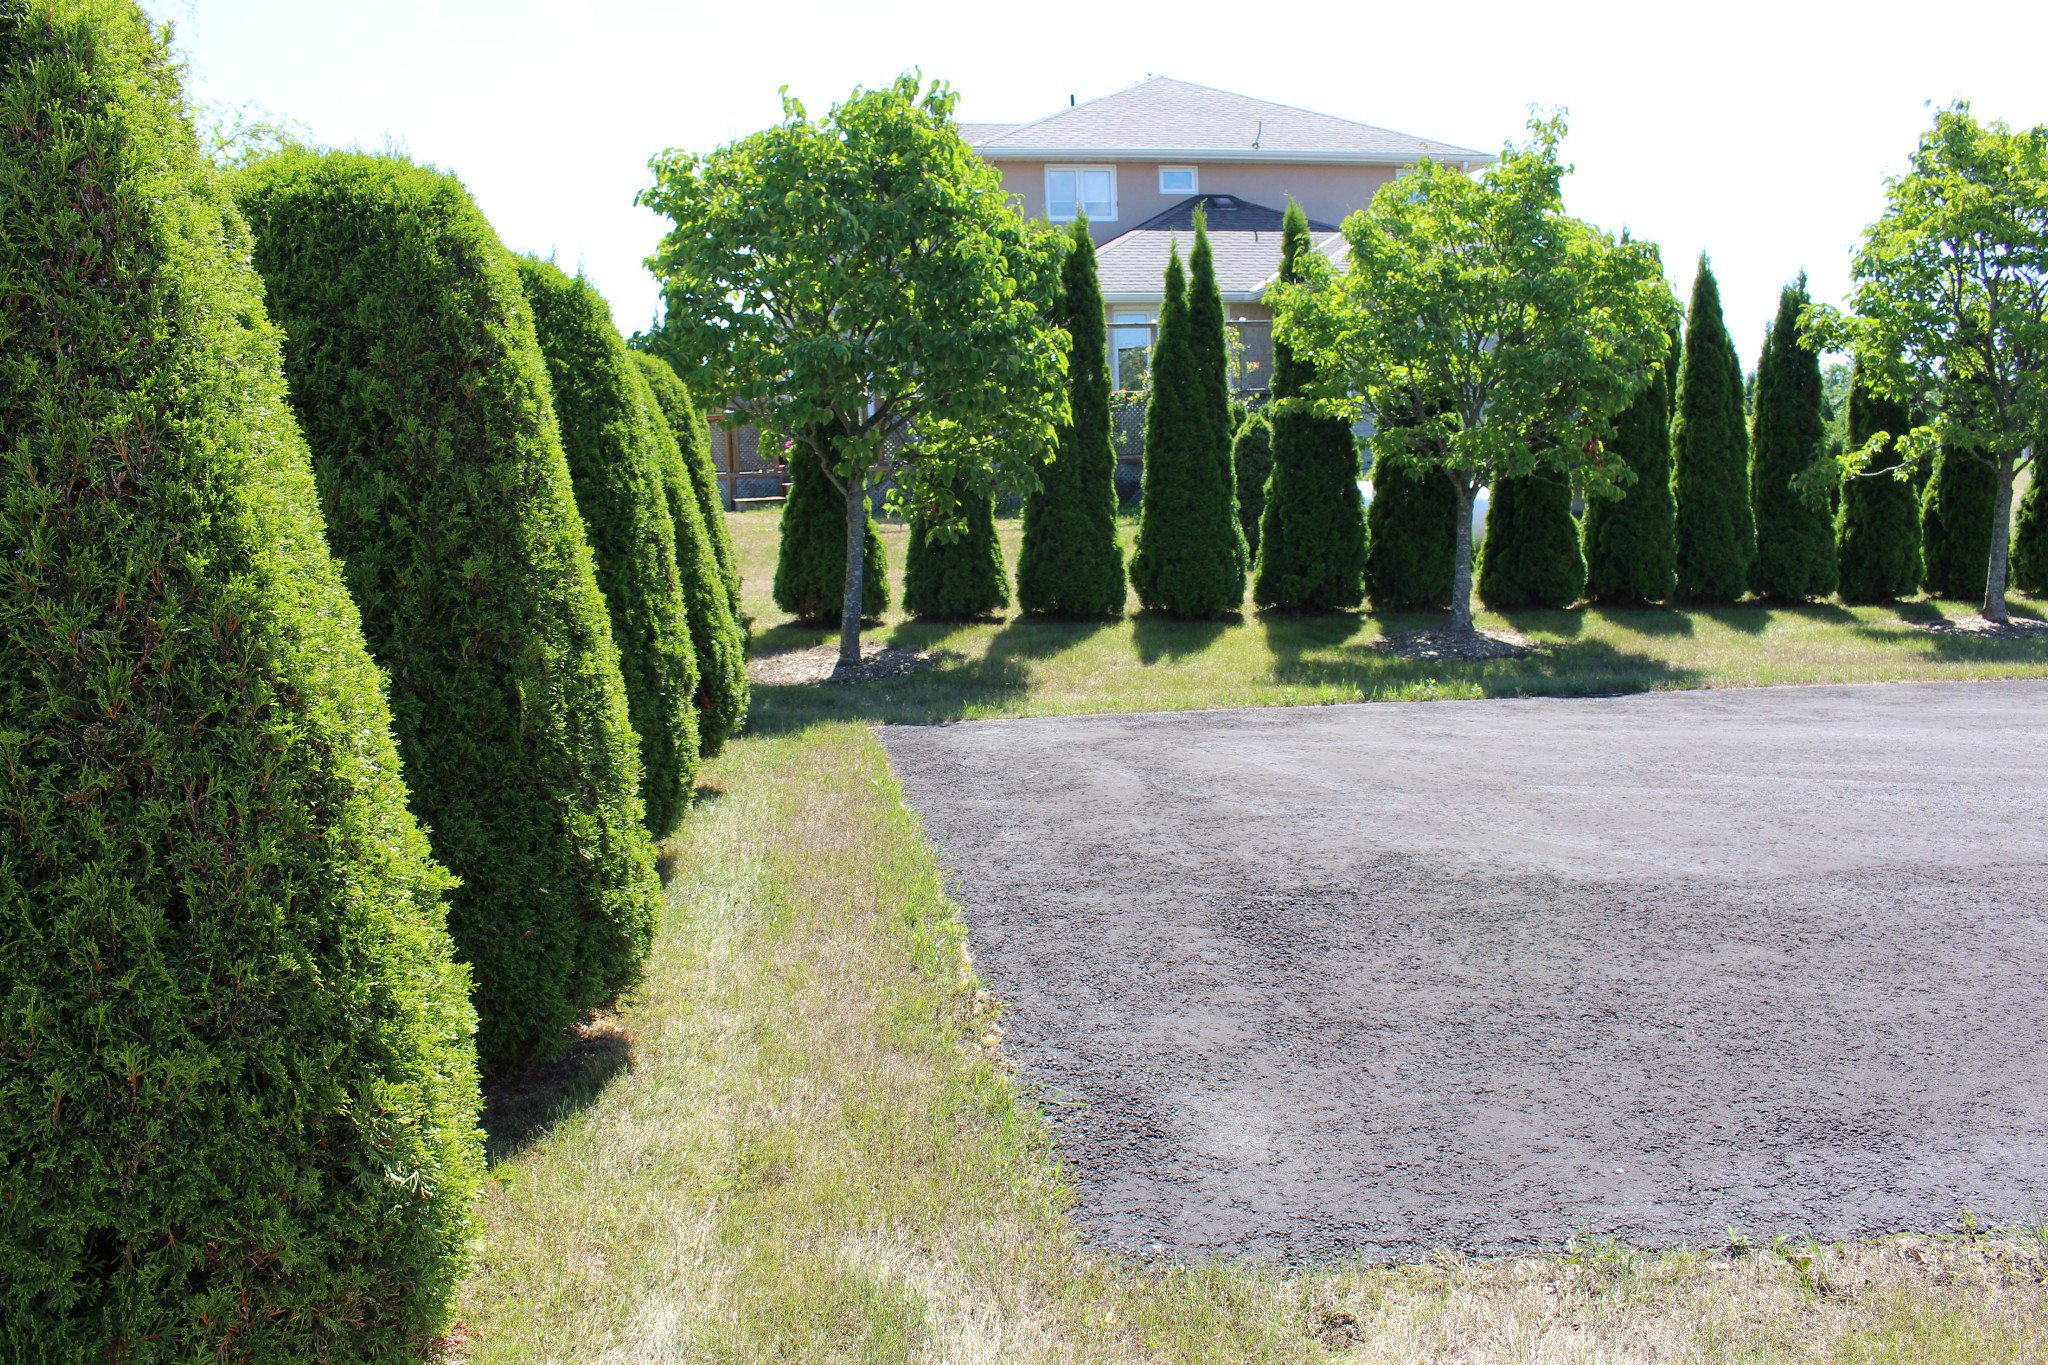 Photo 51: Photos: 159 Nawautin Drive in Grafton: Residential Detached for sale : MLS®# 40012652